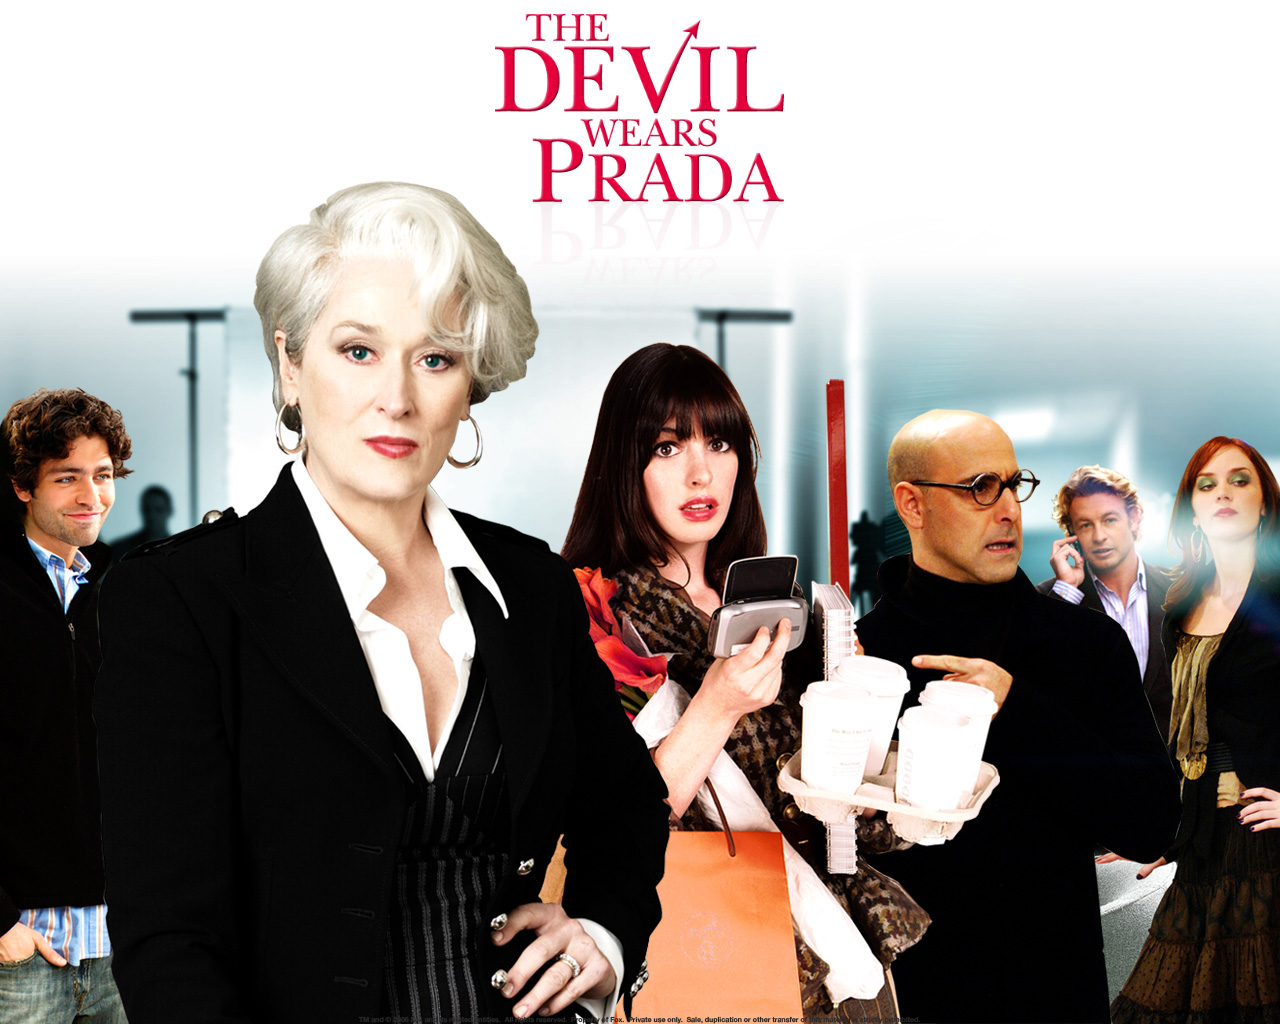 The-Devil-Wears-Prada-Movie-925066656-303312-1